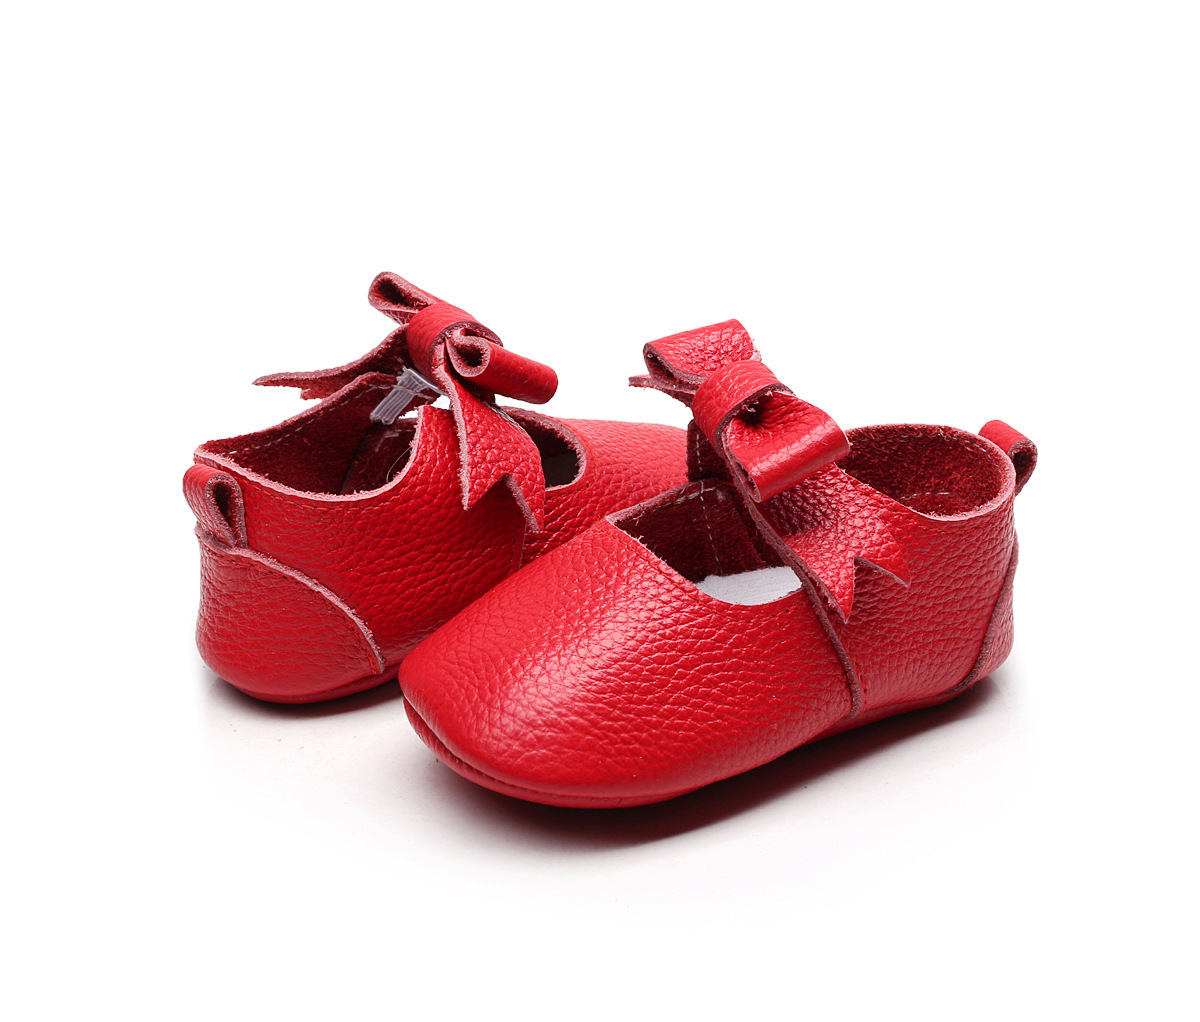 Office baby shoes kids suede dress shoes popular baby leather moccasin